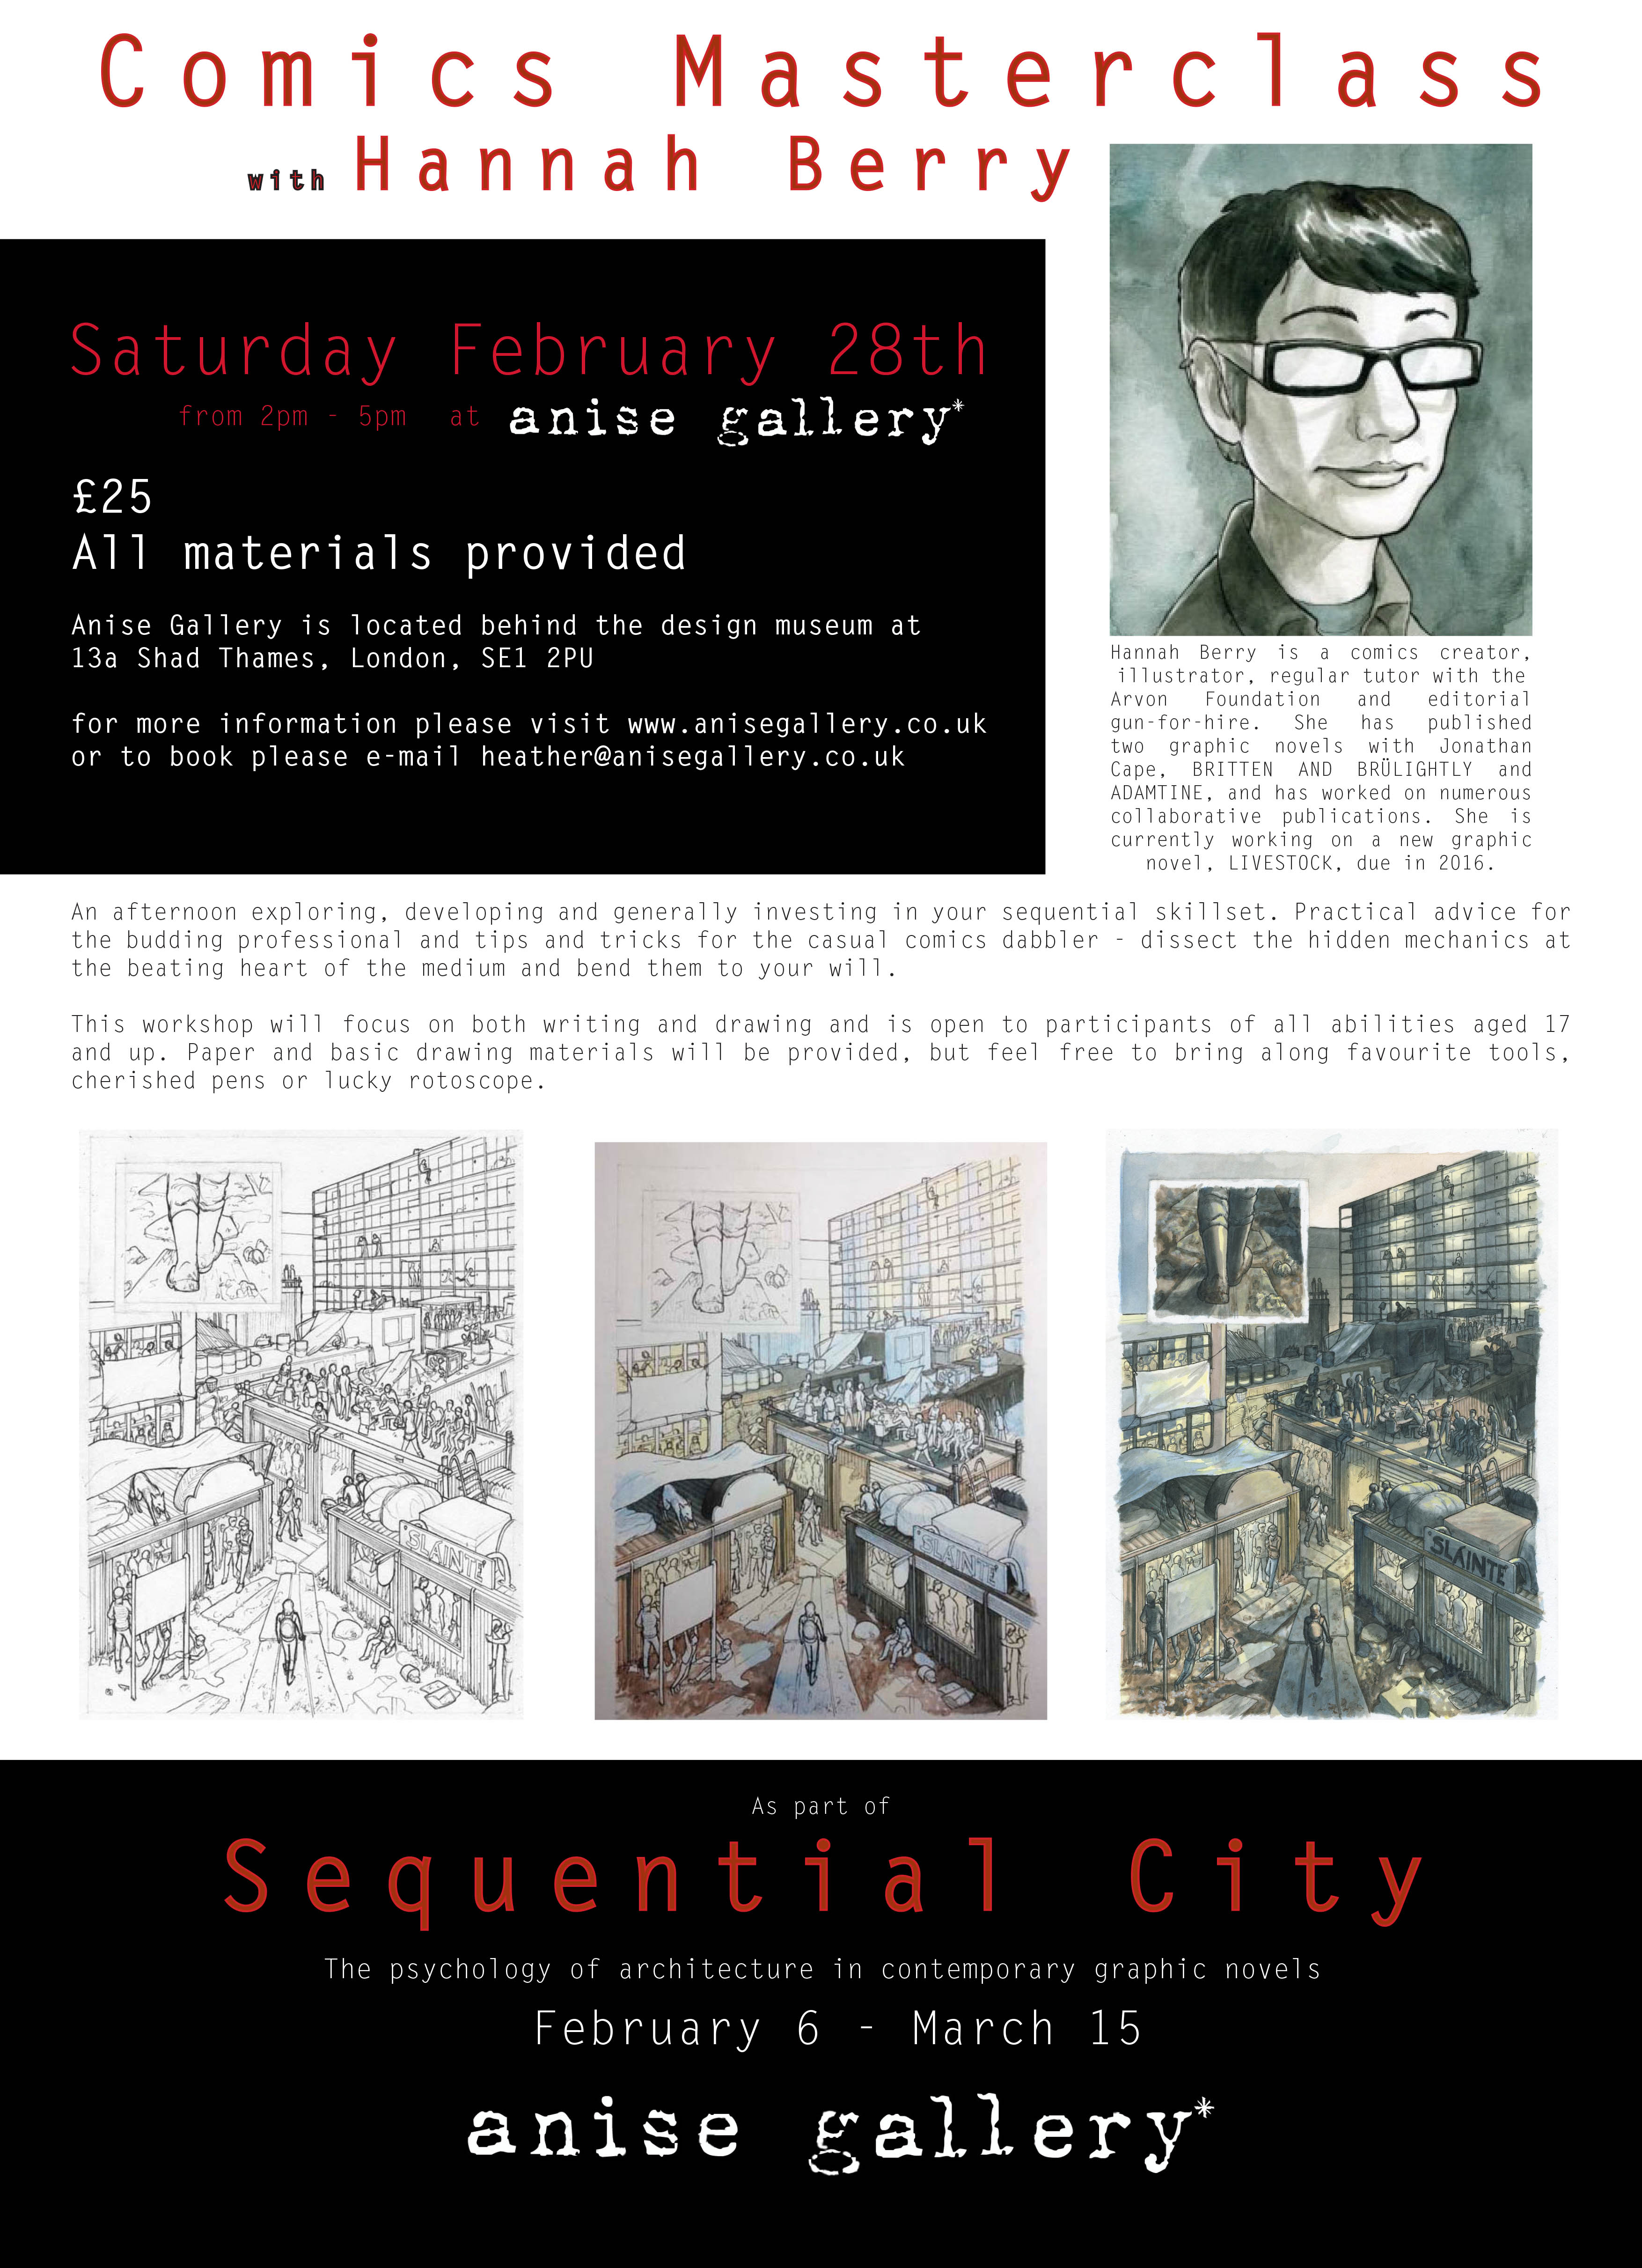 SequentialCity_Masterclass_Poster